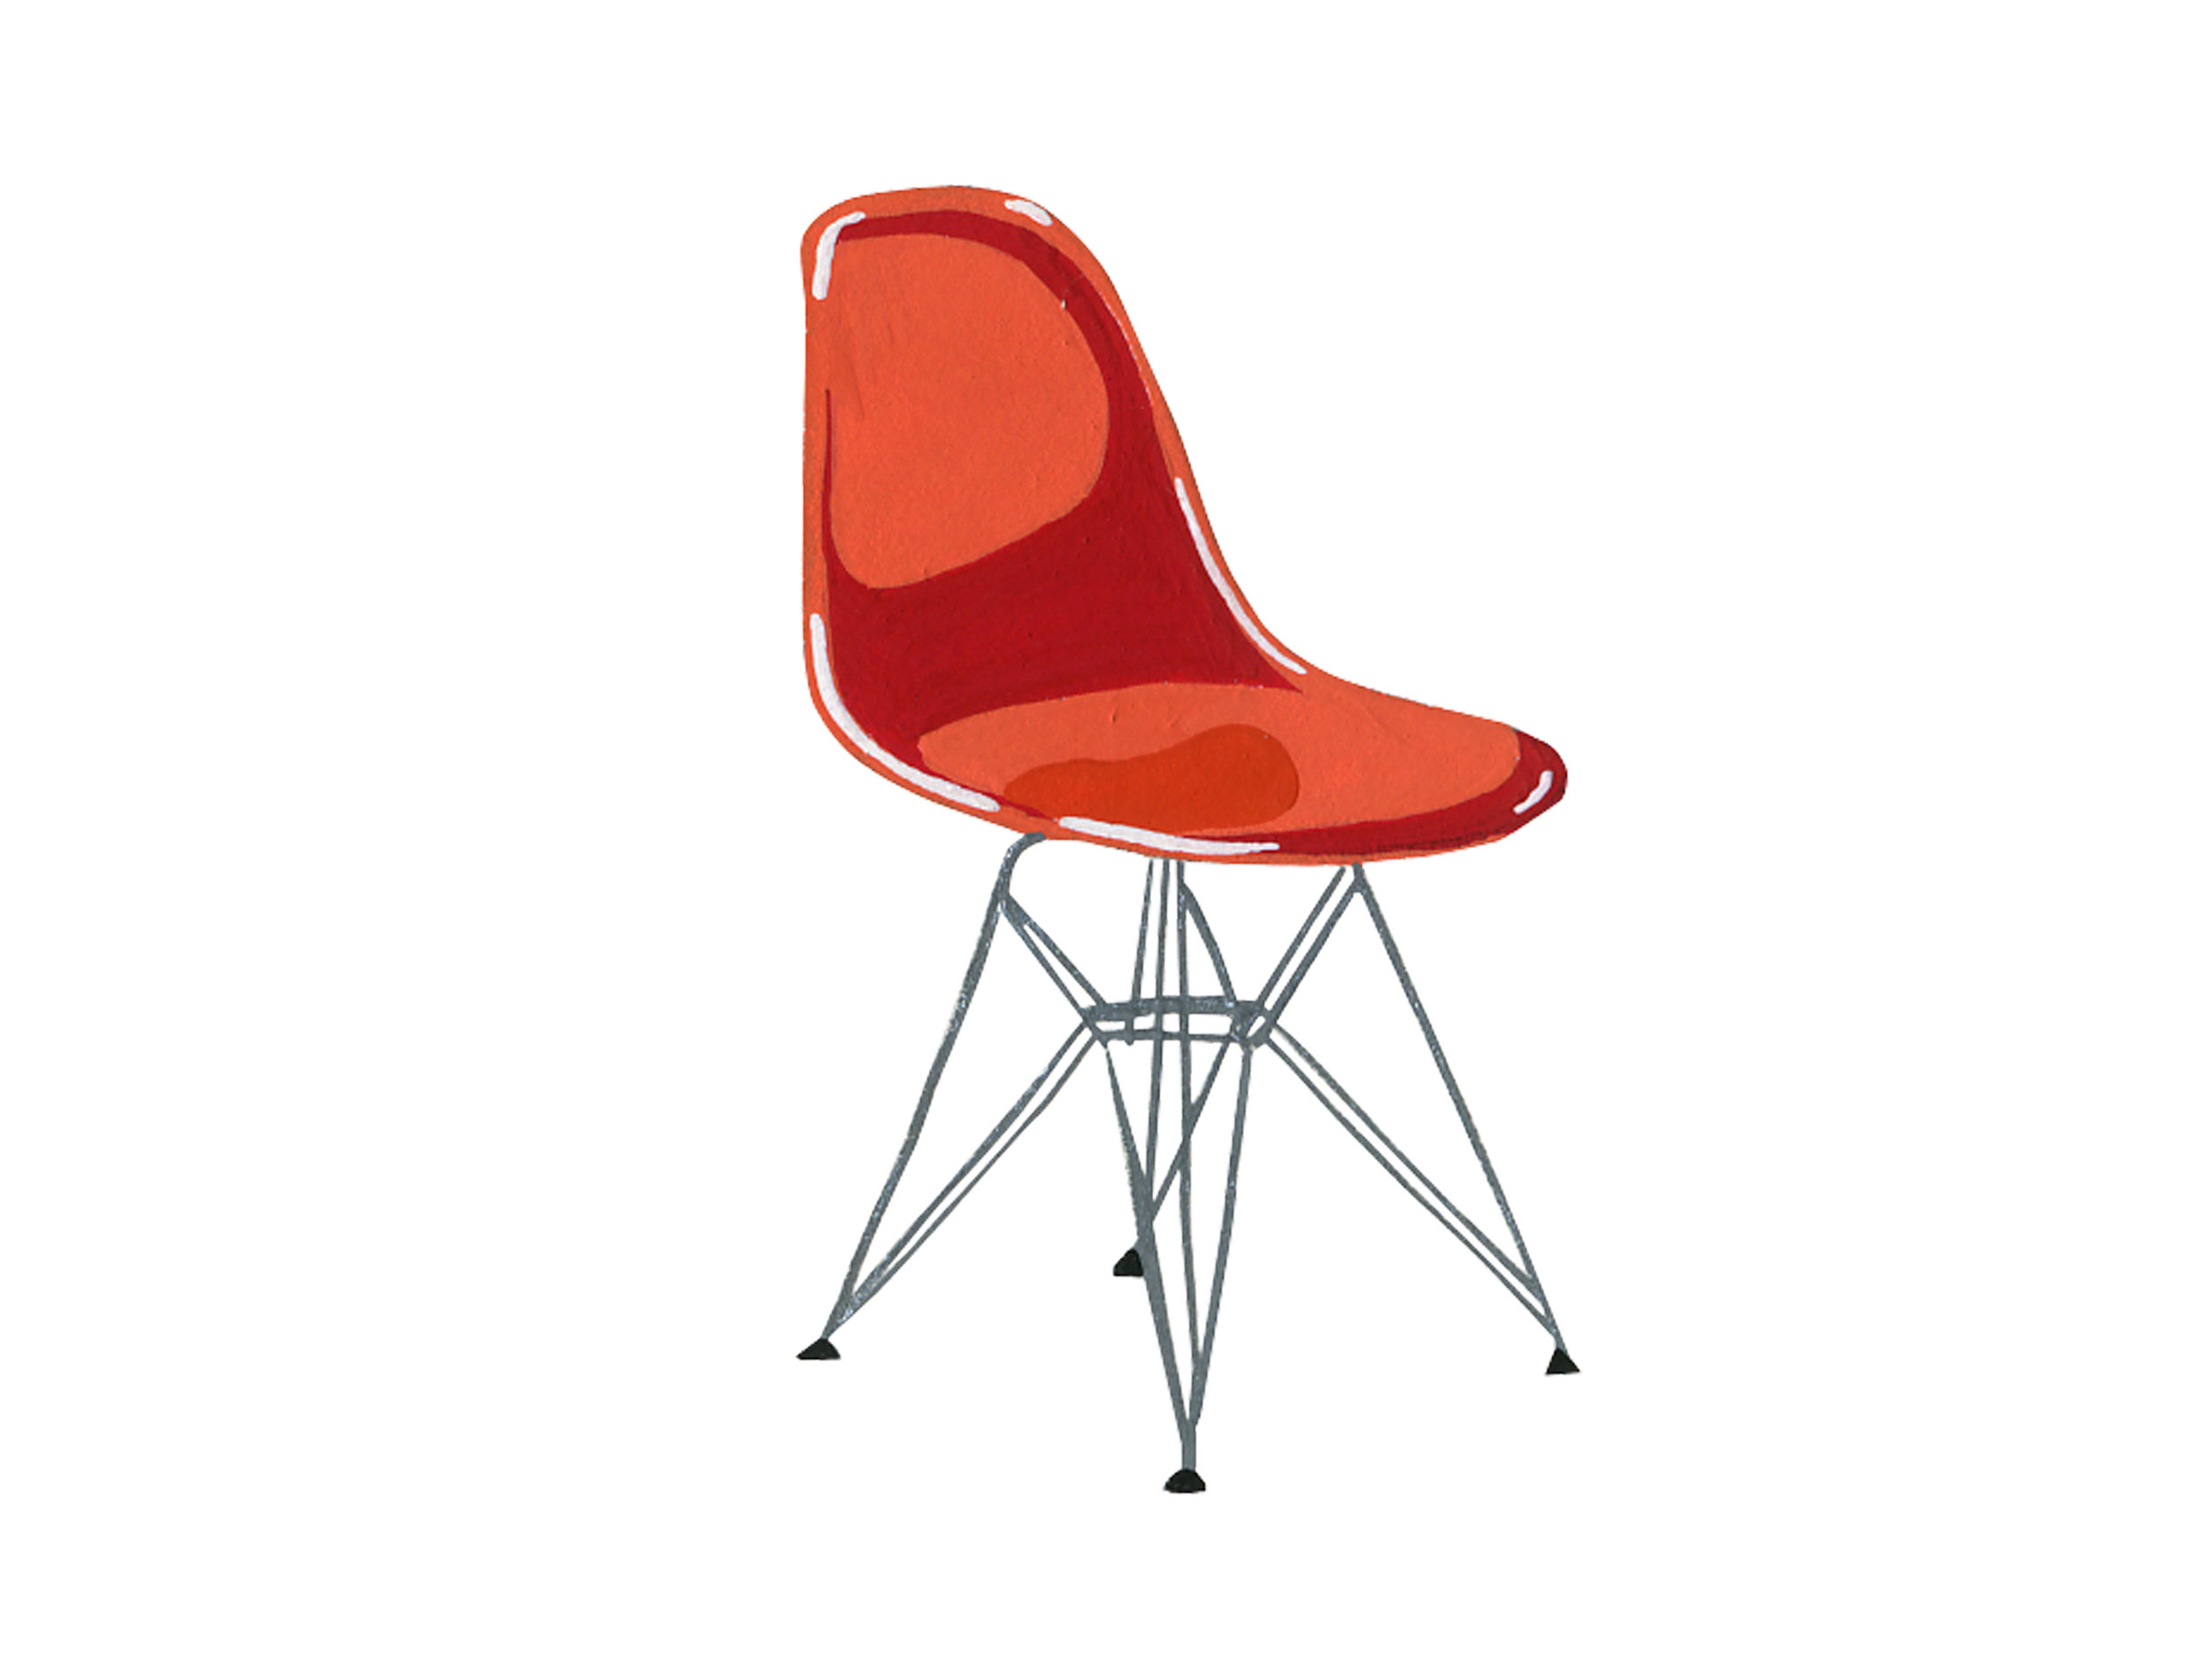 Red Molded Plastic Eames | Mid-Century Chair Series